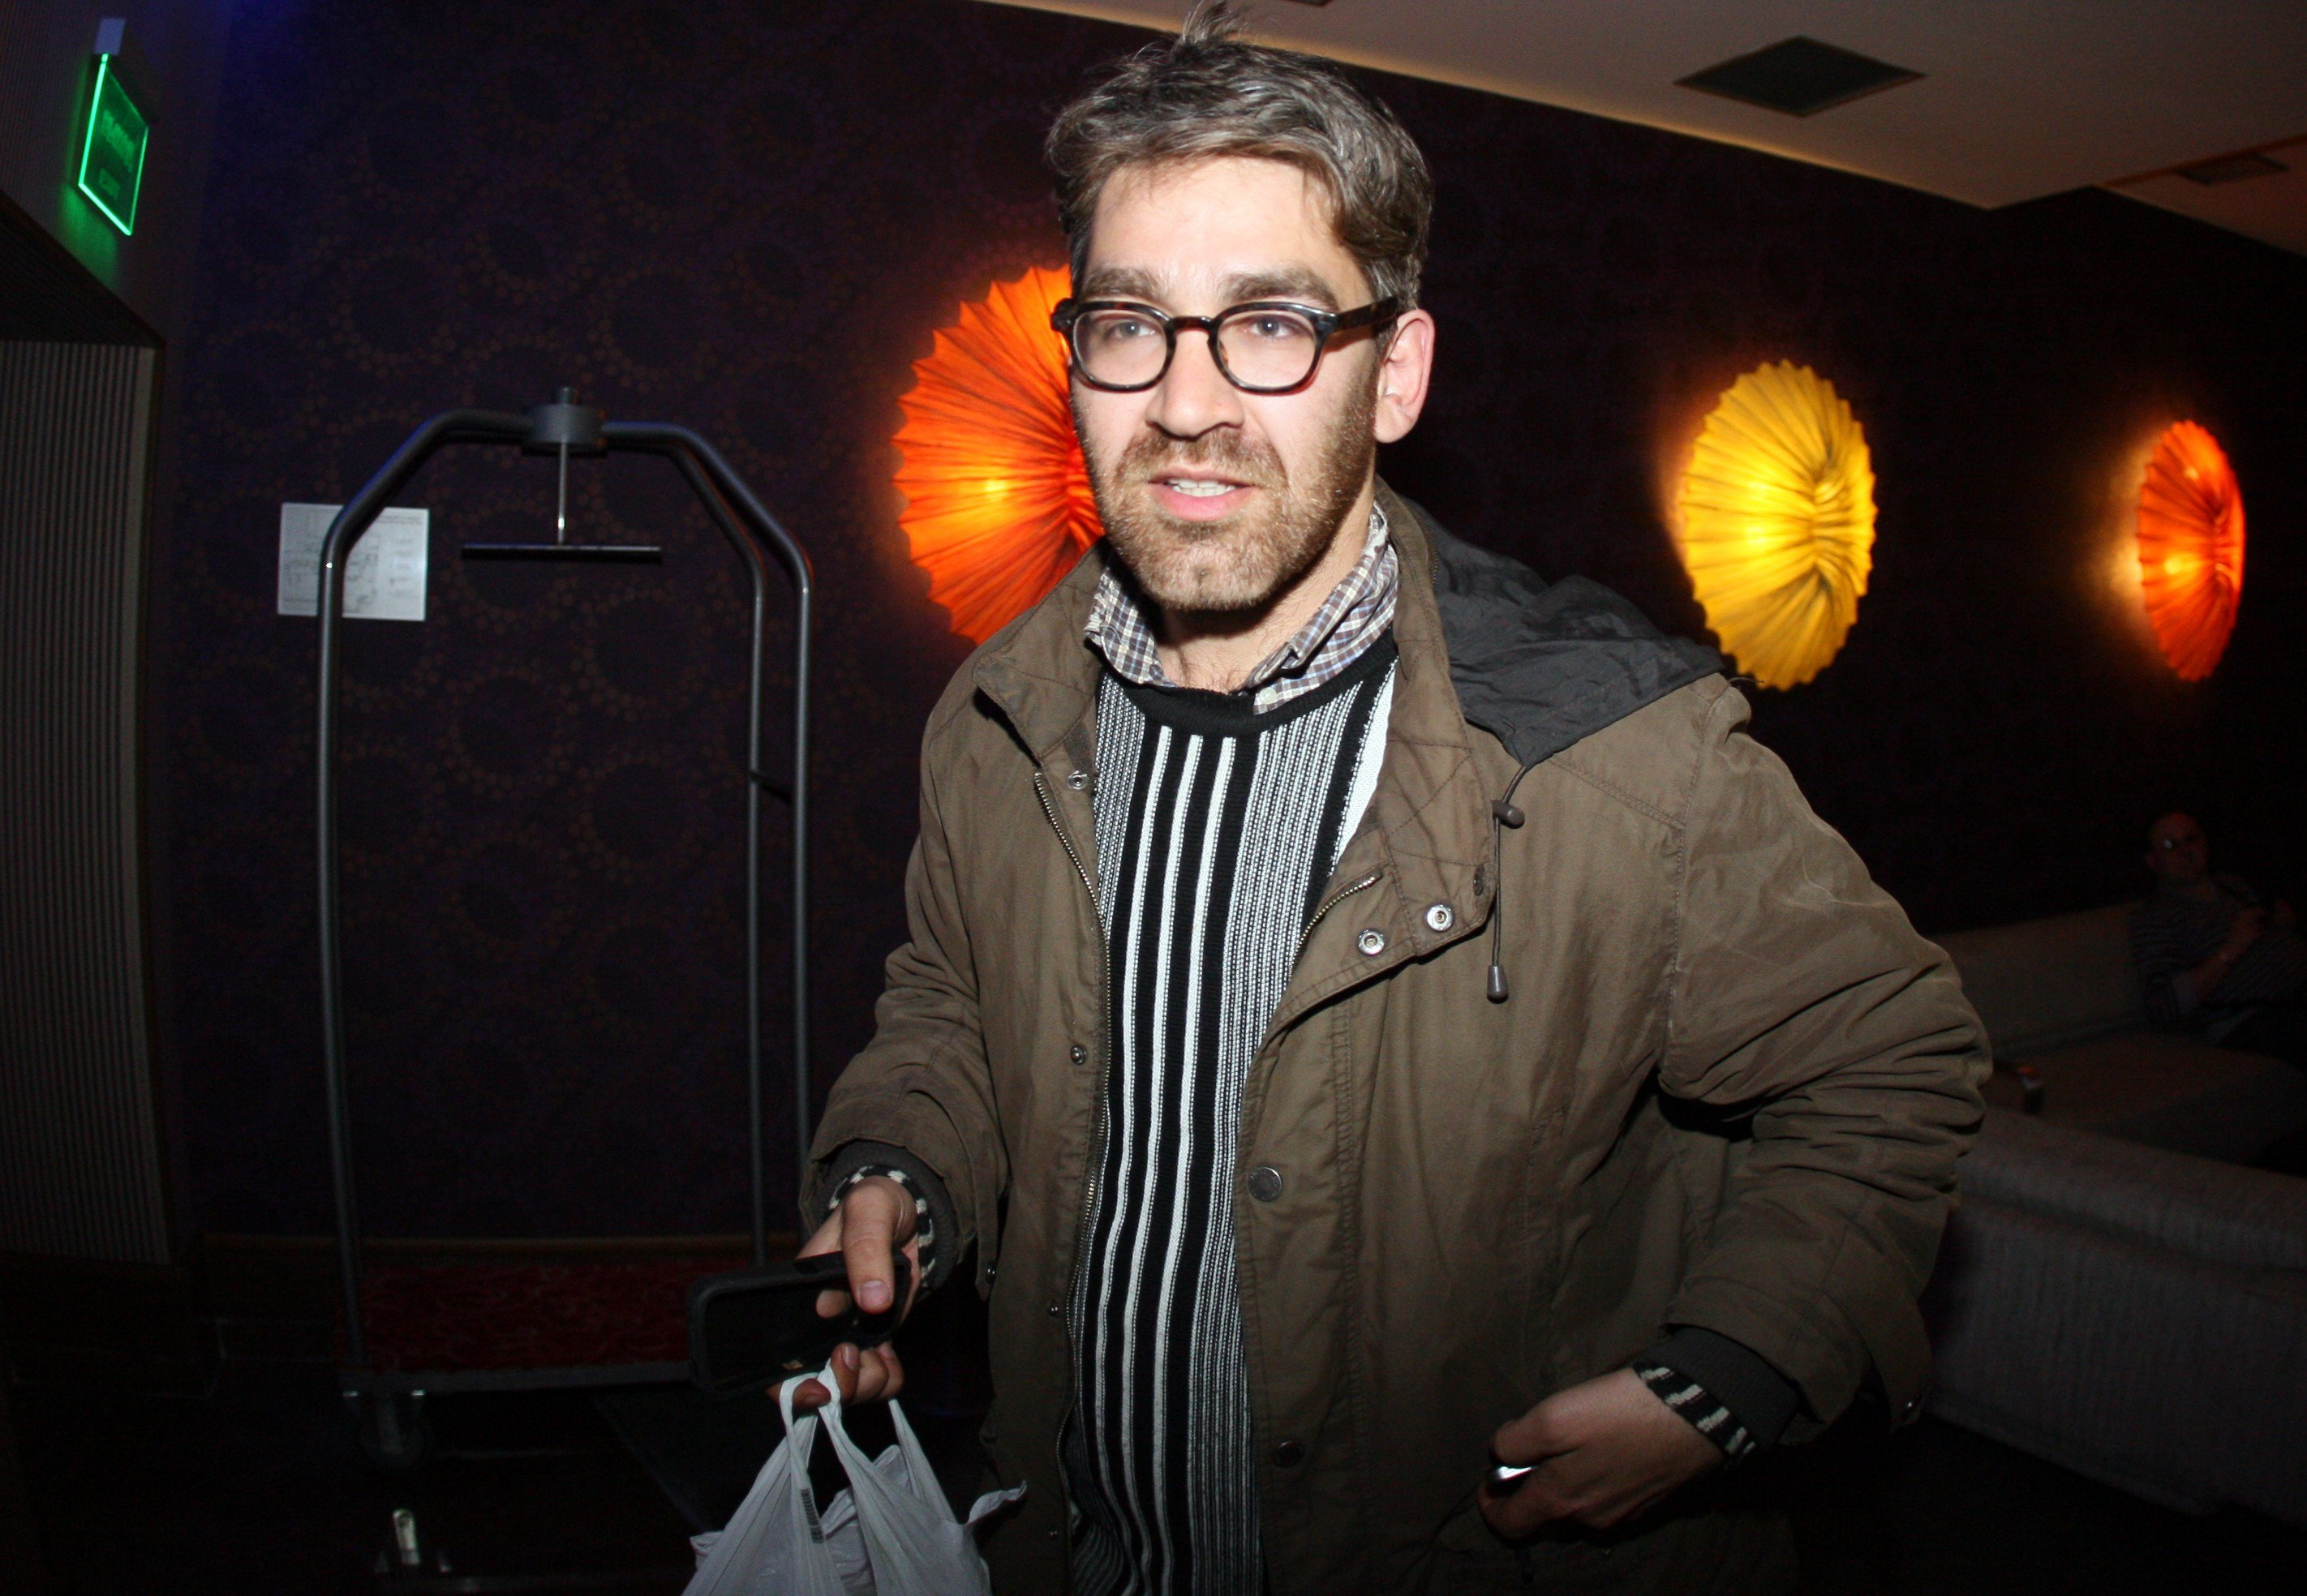 U.S. journalist Simon Ostrovsky, who was abducted and held by pro-Kremlin rebels in east Ukraine this week, arrives in a hotel in the eastern Ukrainian city of Donetsk after being freed, on April 24, 2014.